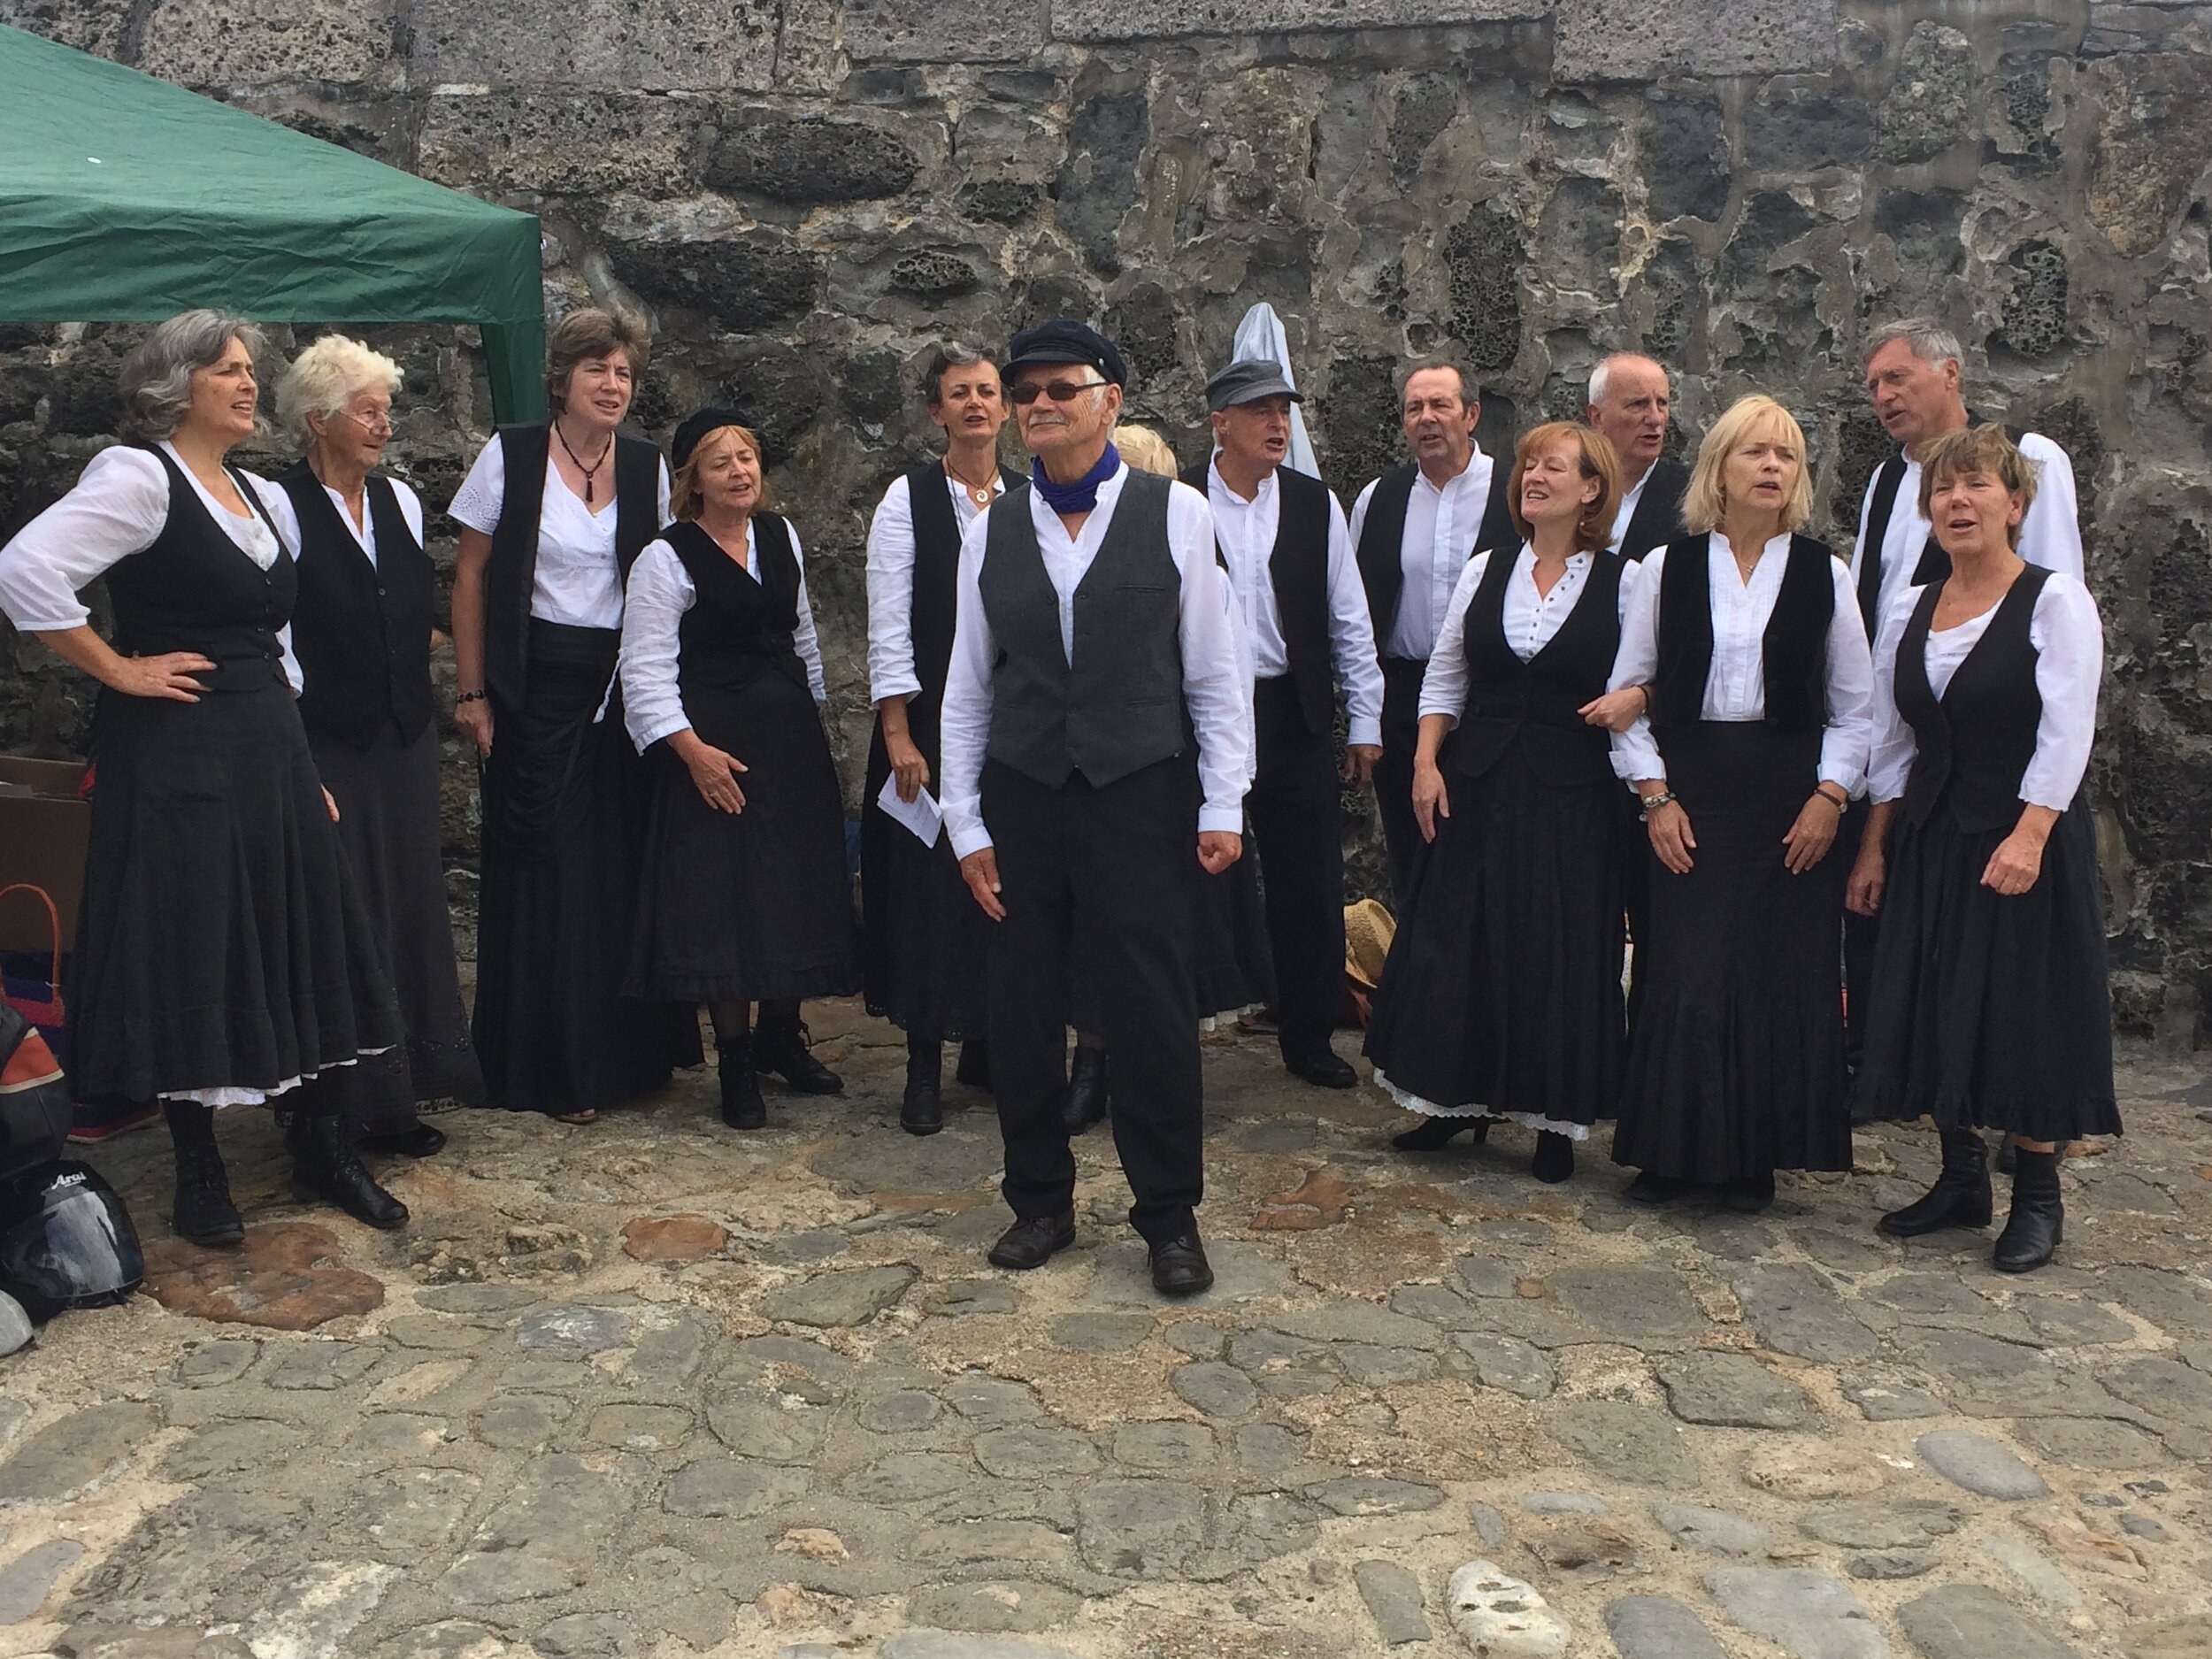 Supporting the Lyme Regis Gig Club Aug 2017